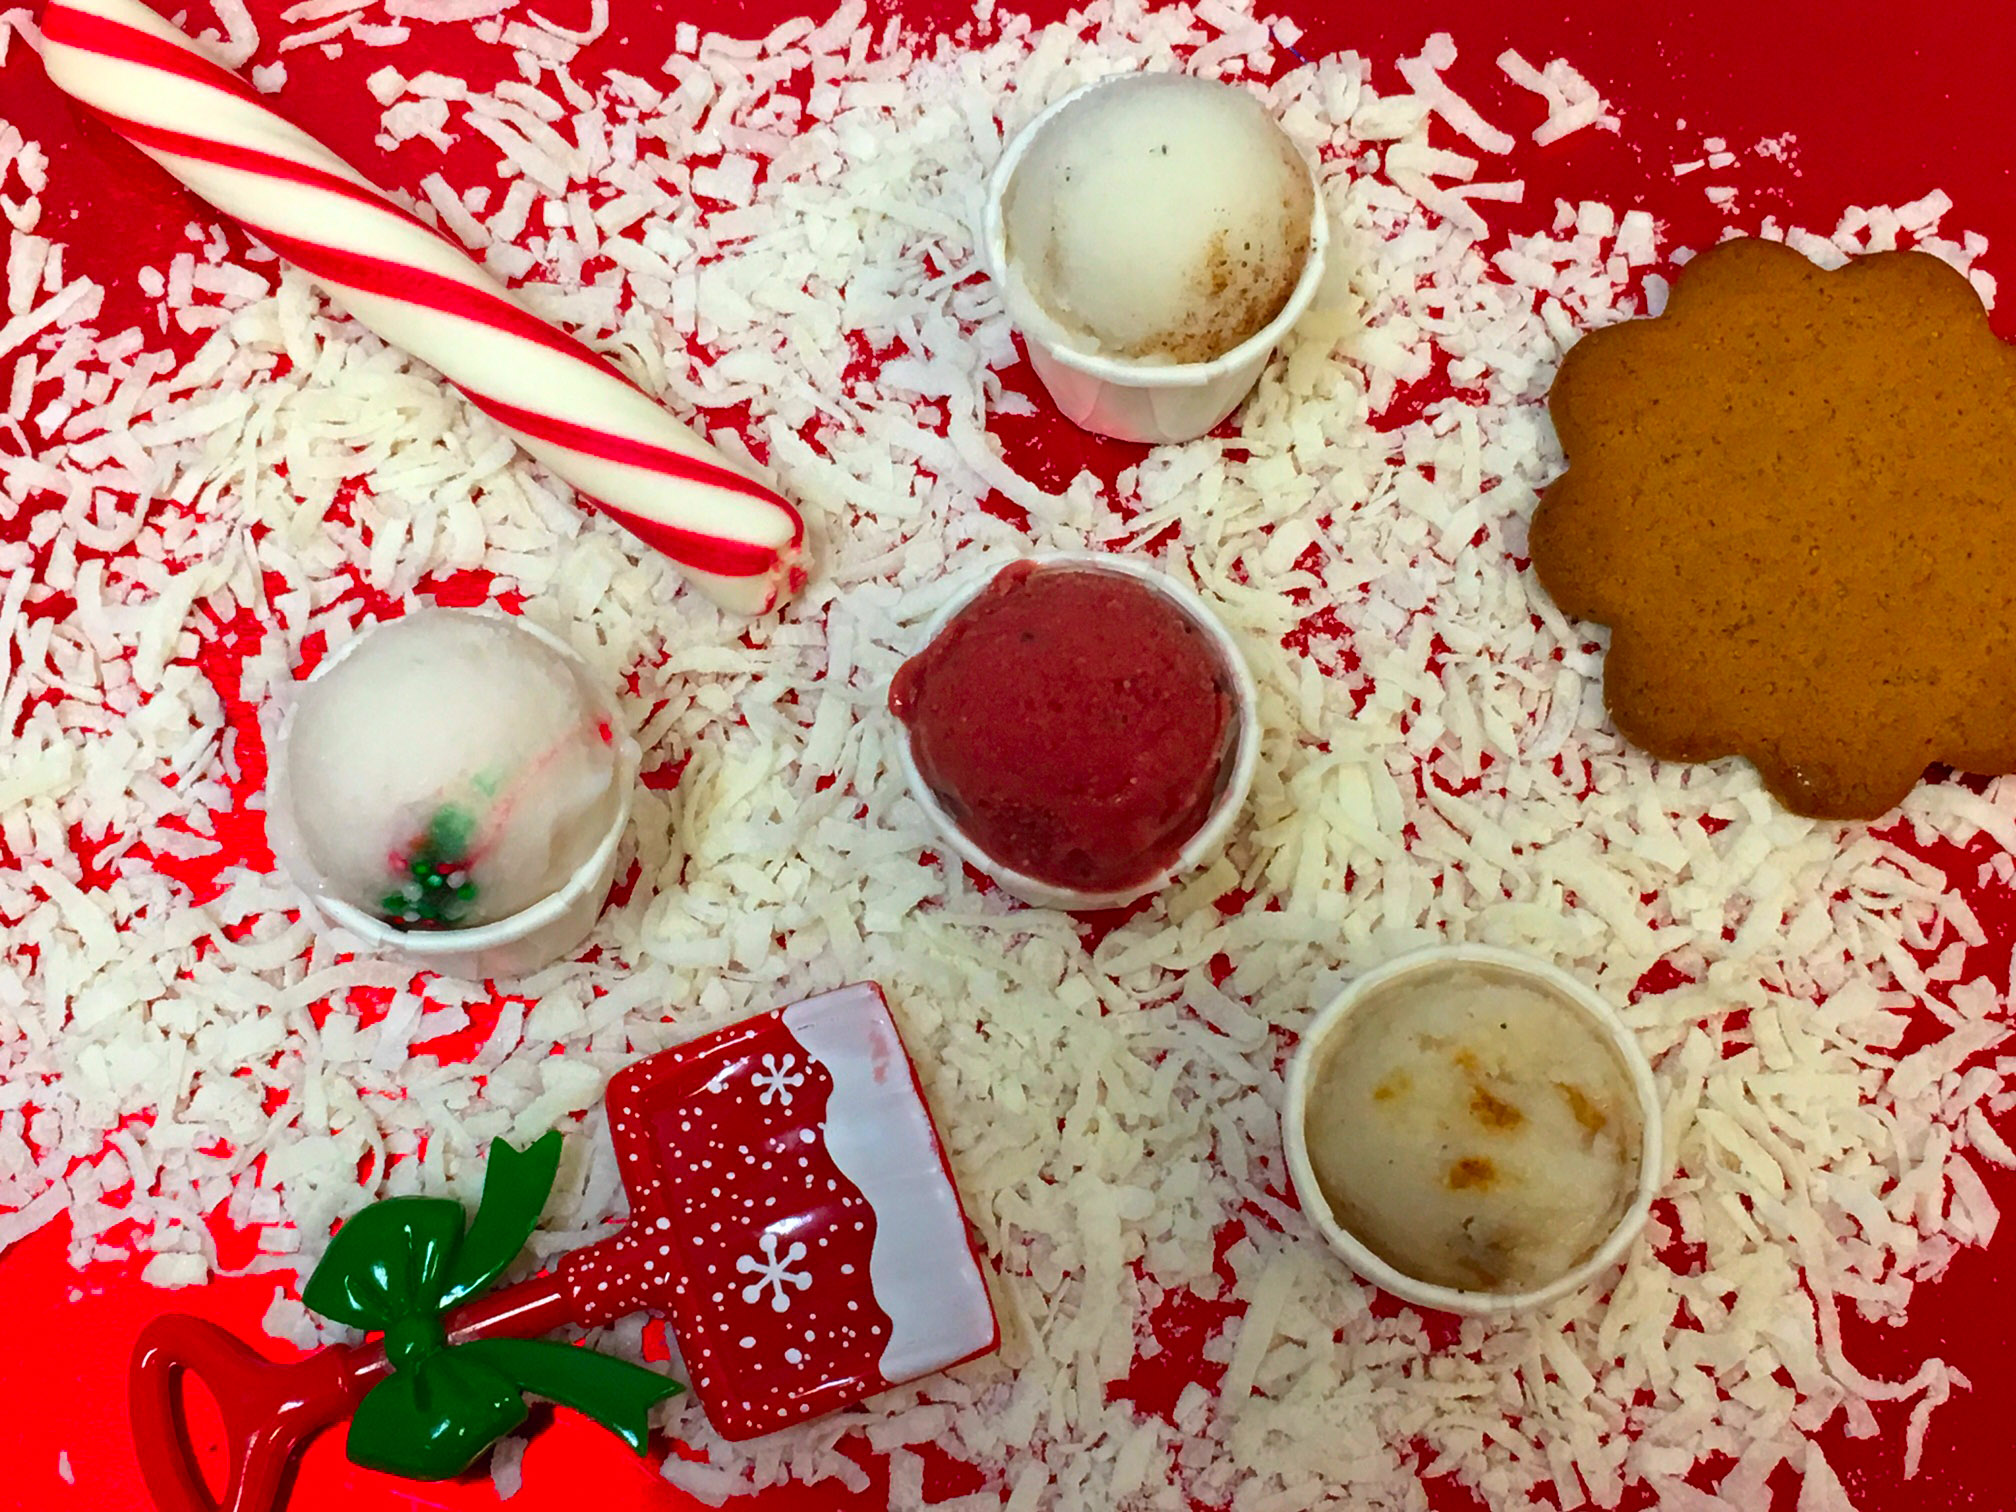 Introducing our Christmas season gelato flavors: Candy Cane, Chocolate Covered Cherry, Egg Nog, and Gingerbread Cookie.